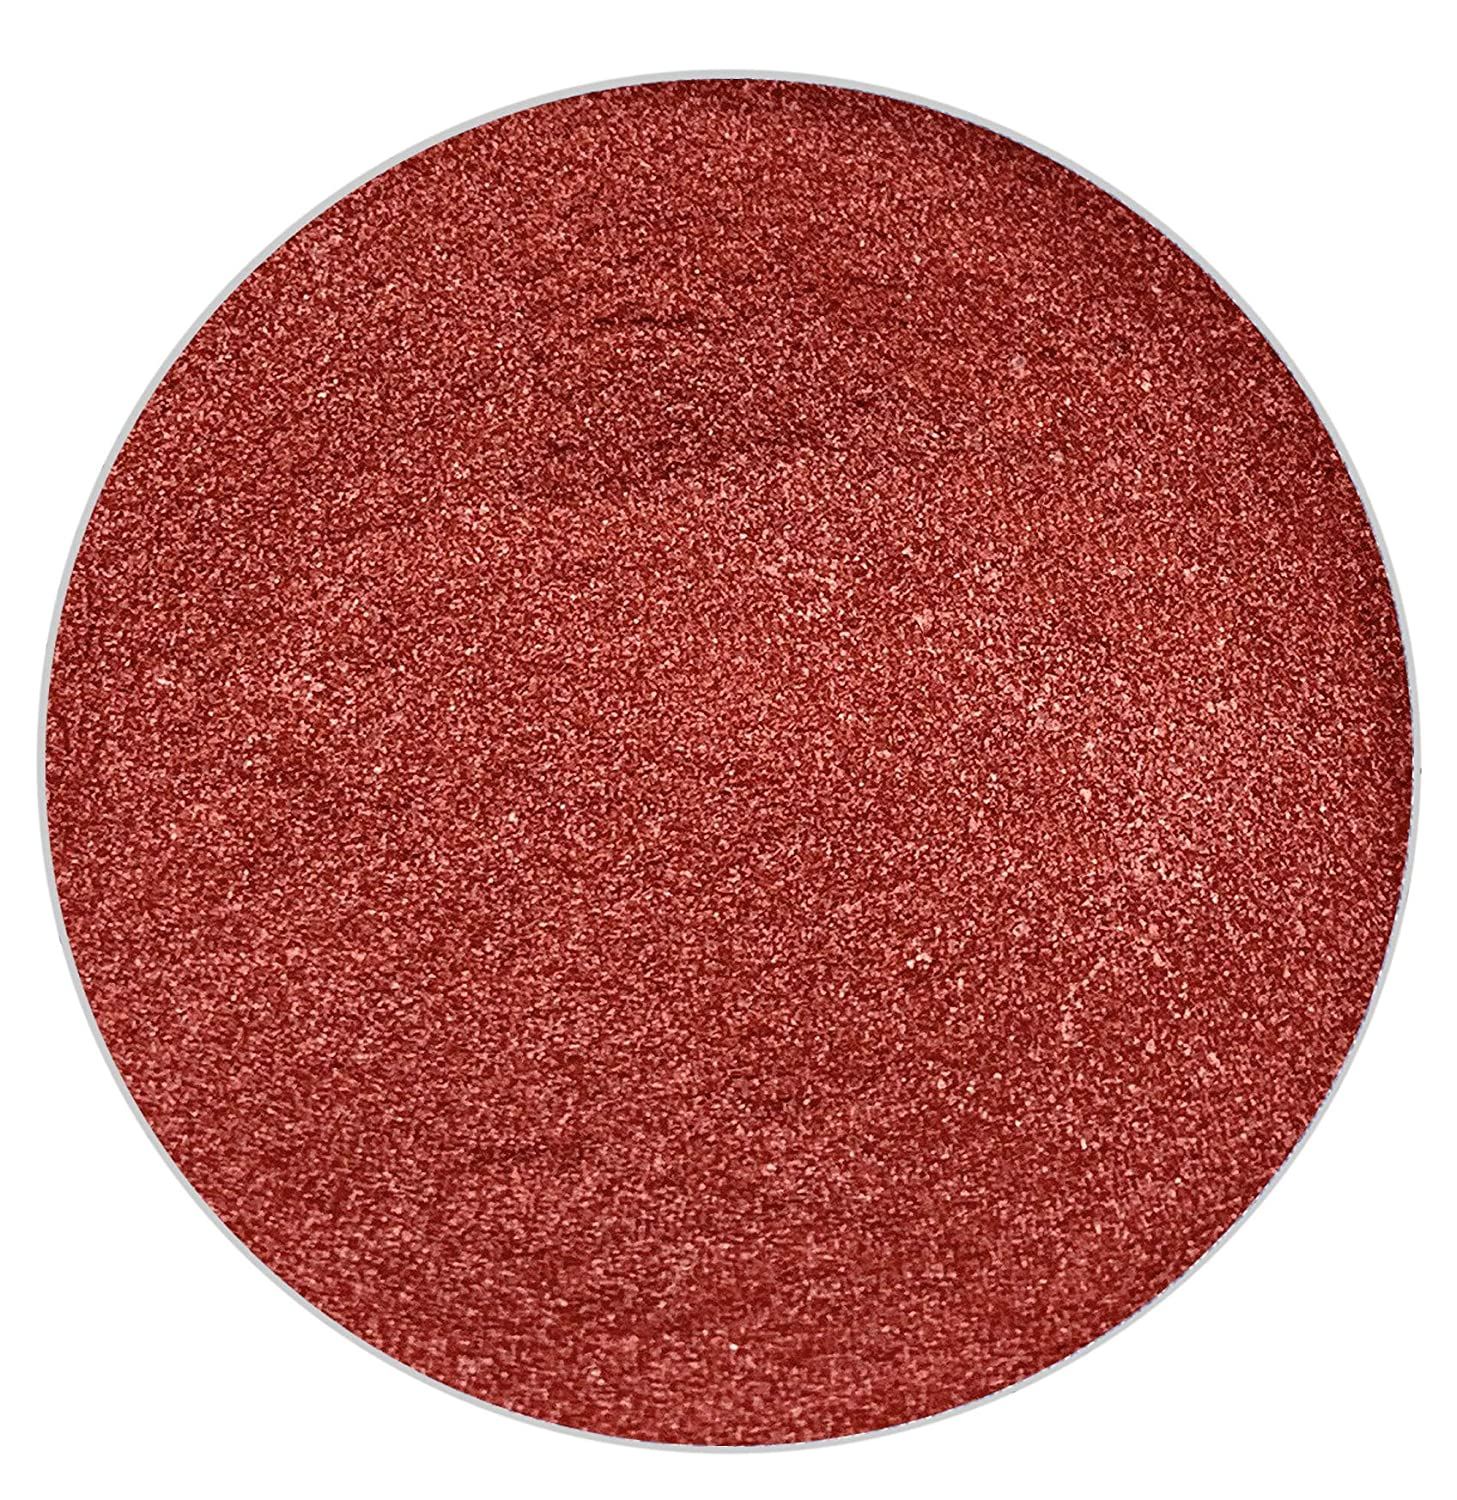 Ultimate Baker All Natural Red Food Color - Kosher Red Food Coloring Powder for Airbrush or Gel Paste Cake Decorating (12grams)